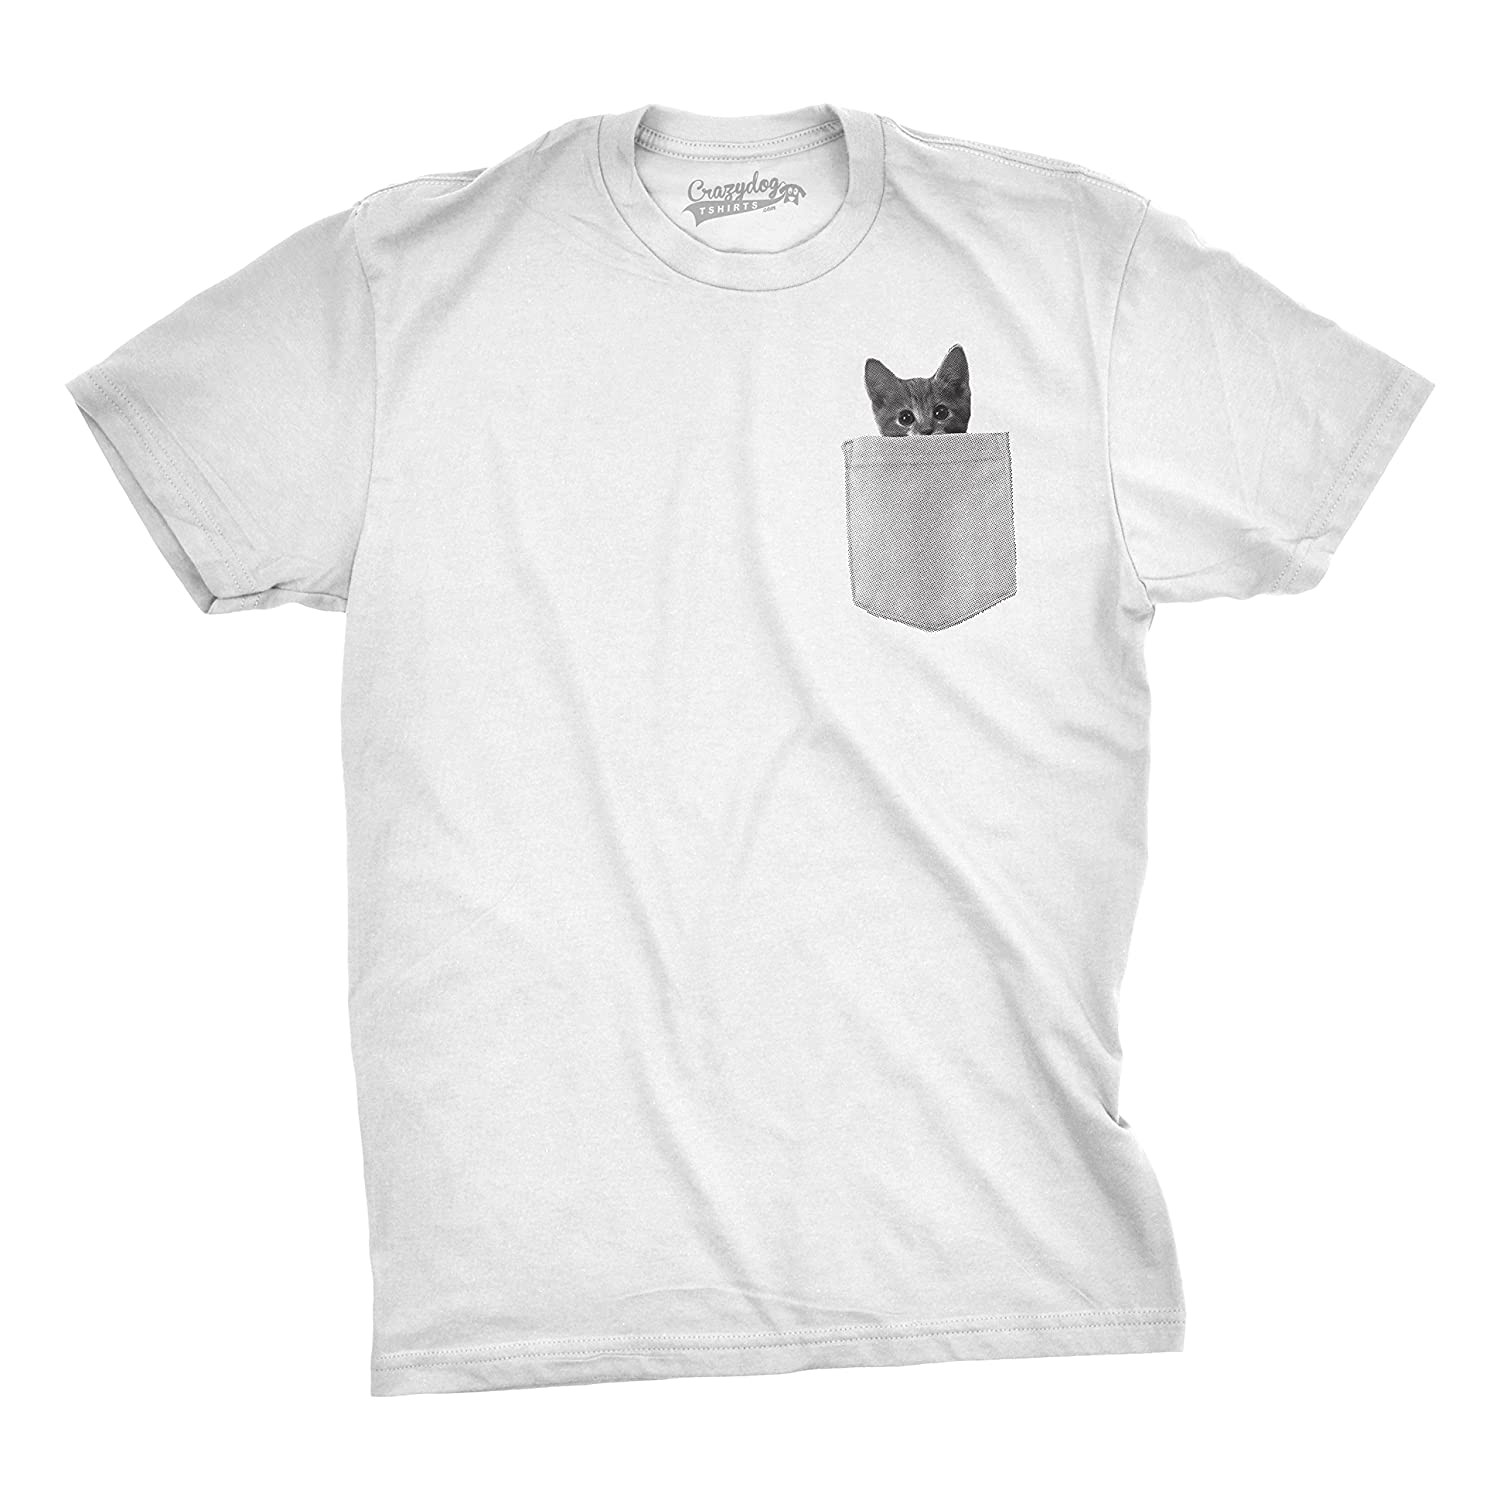 Amazon.com: Mens Pocket Cat T Shirt Funny Printed Peeking Pet .